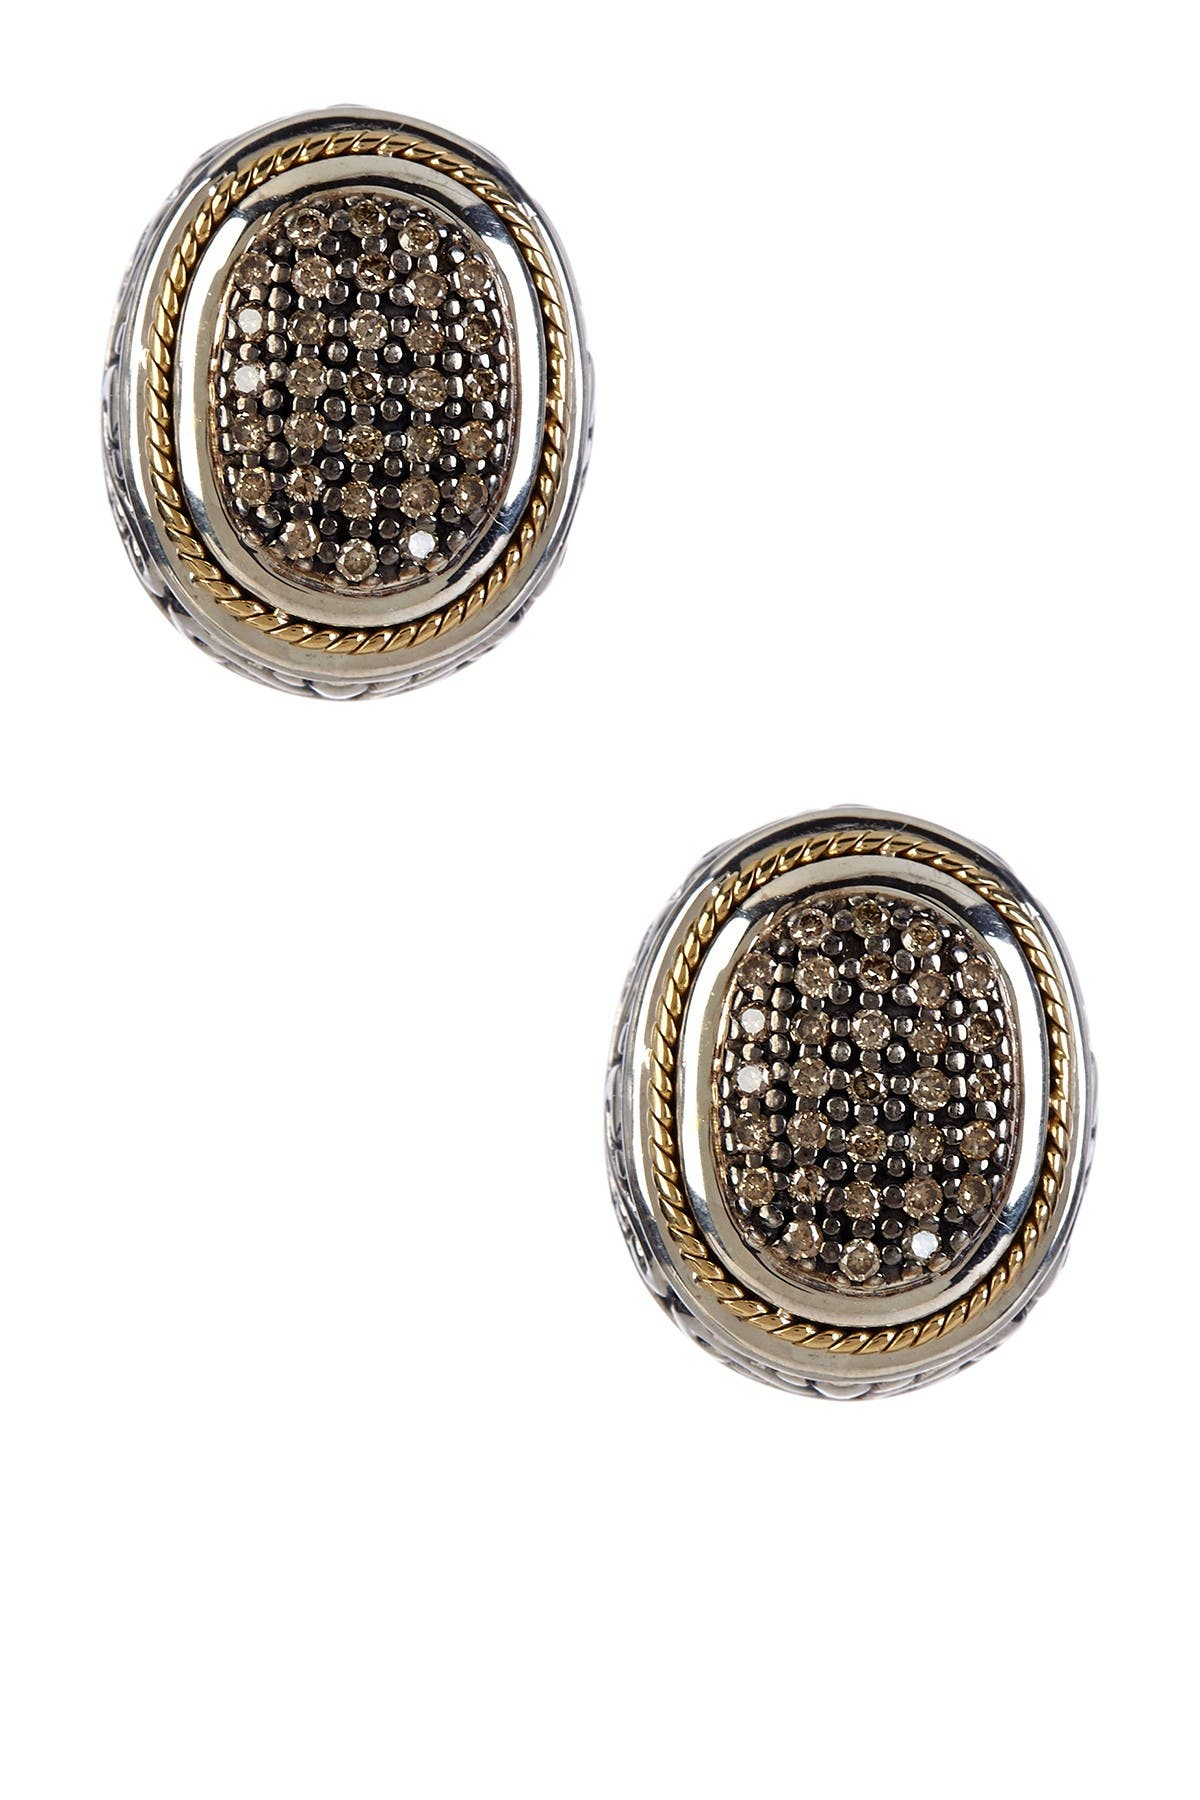 Image of Effy Sterling Silver & 18K Yellow Gold Brown Diamond Oval Earrings - 0.62 ctw